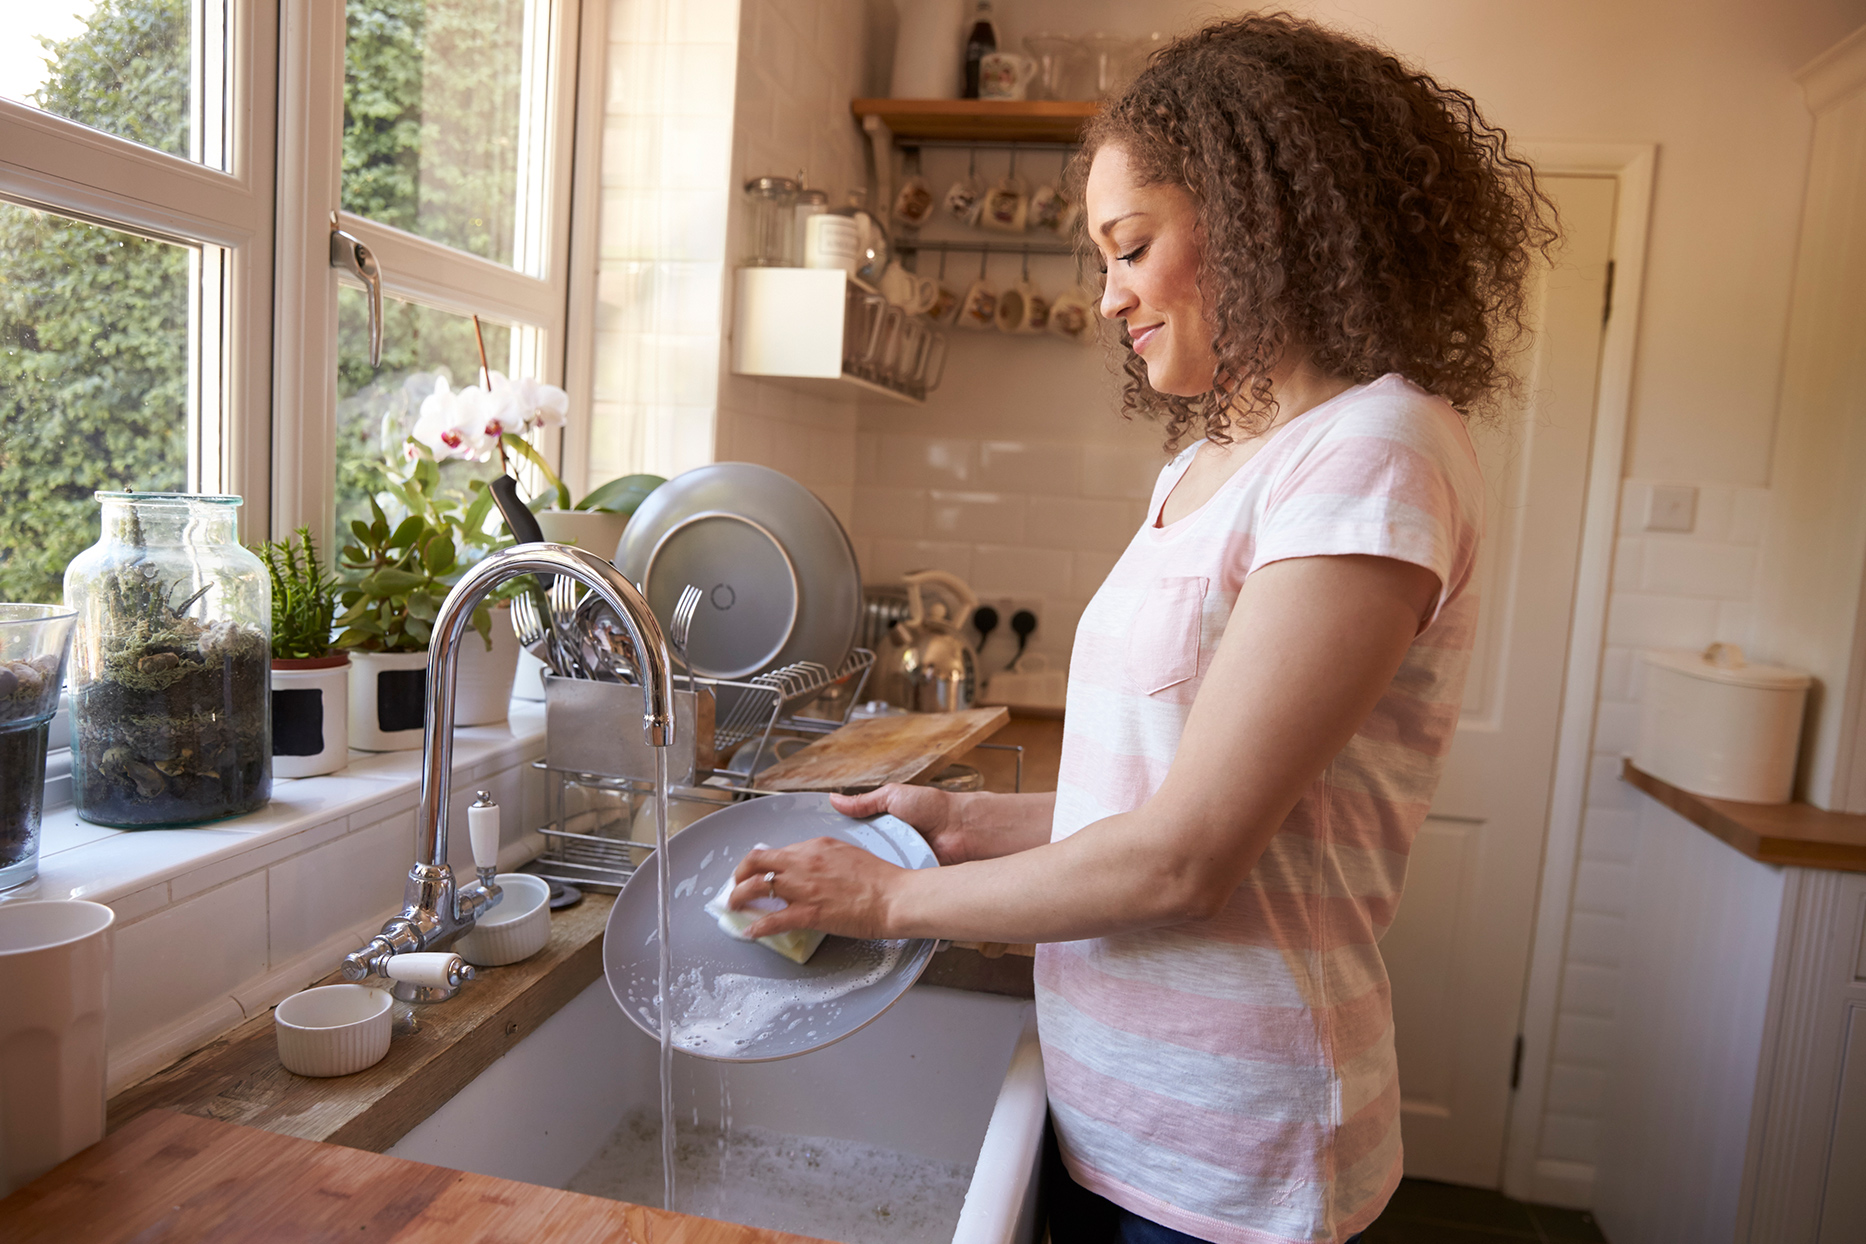 Person washing dishes at sink